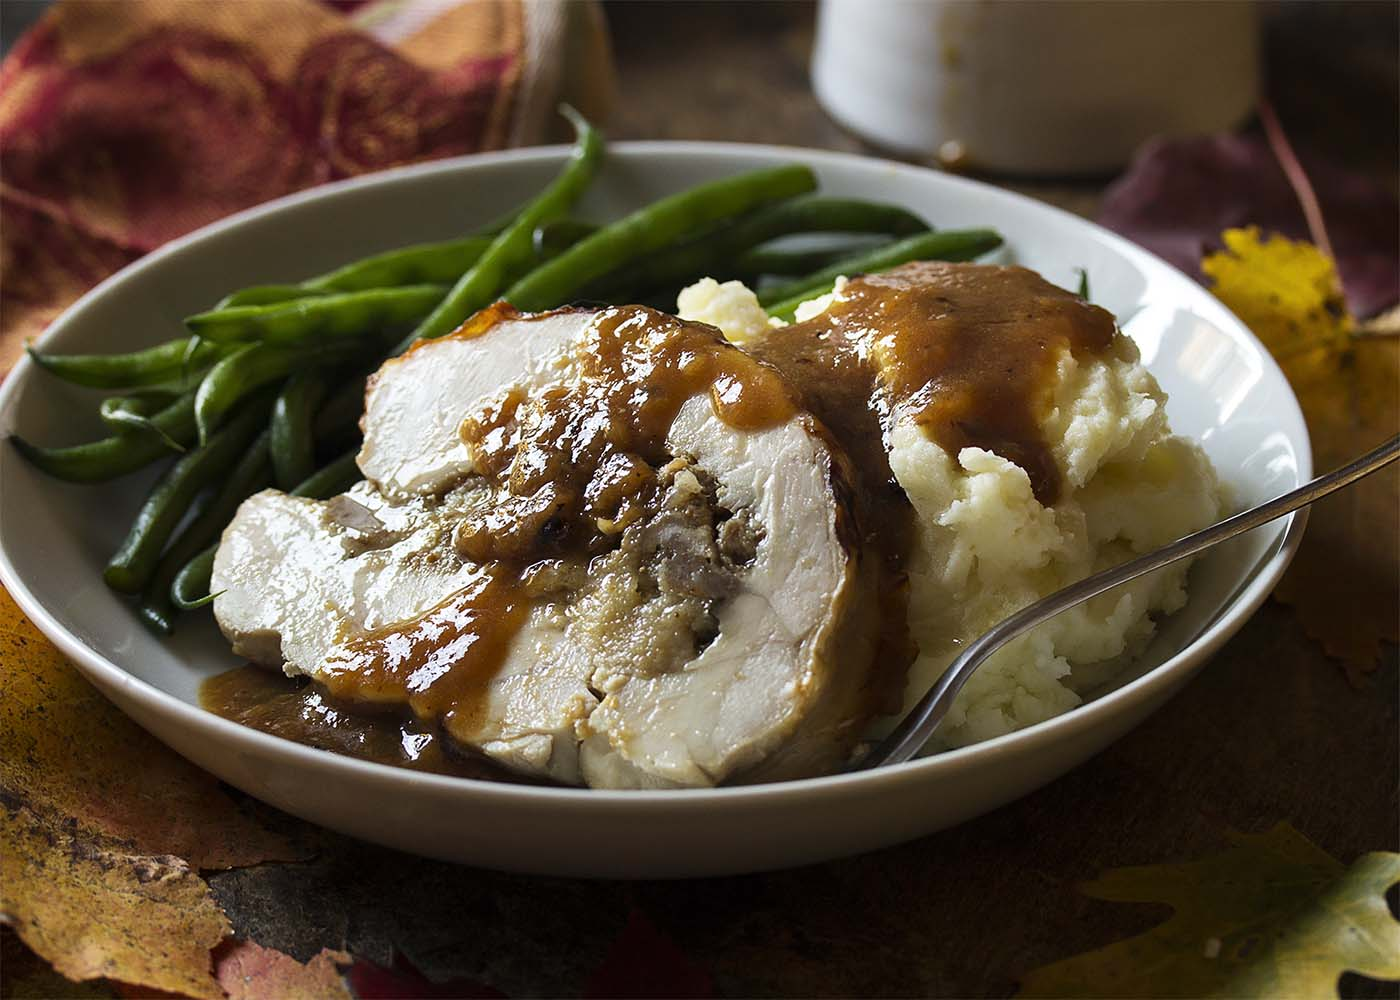 A plate with a slice of turkey breast roulade, mashed potatoes, green beans, and gravy.